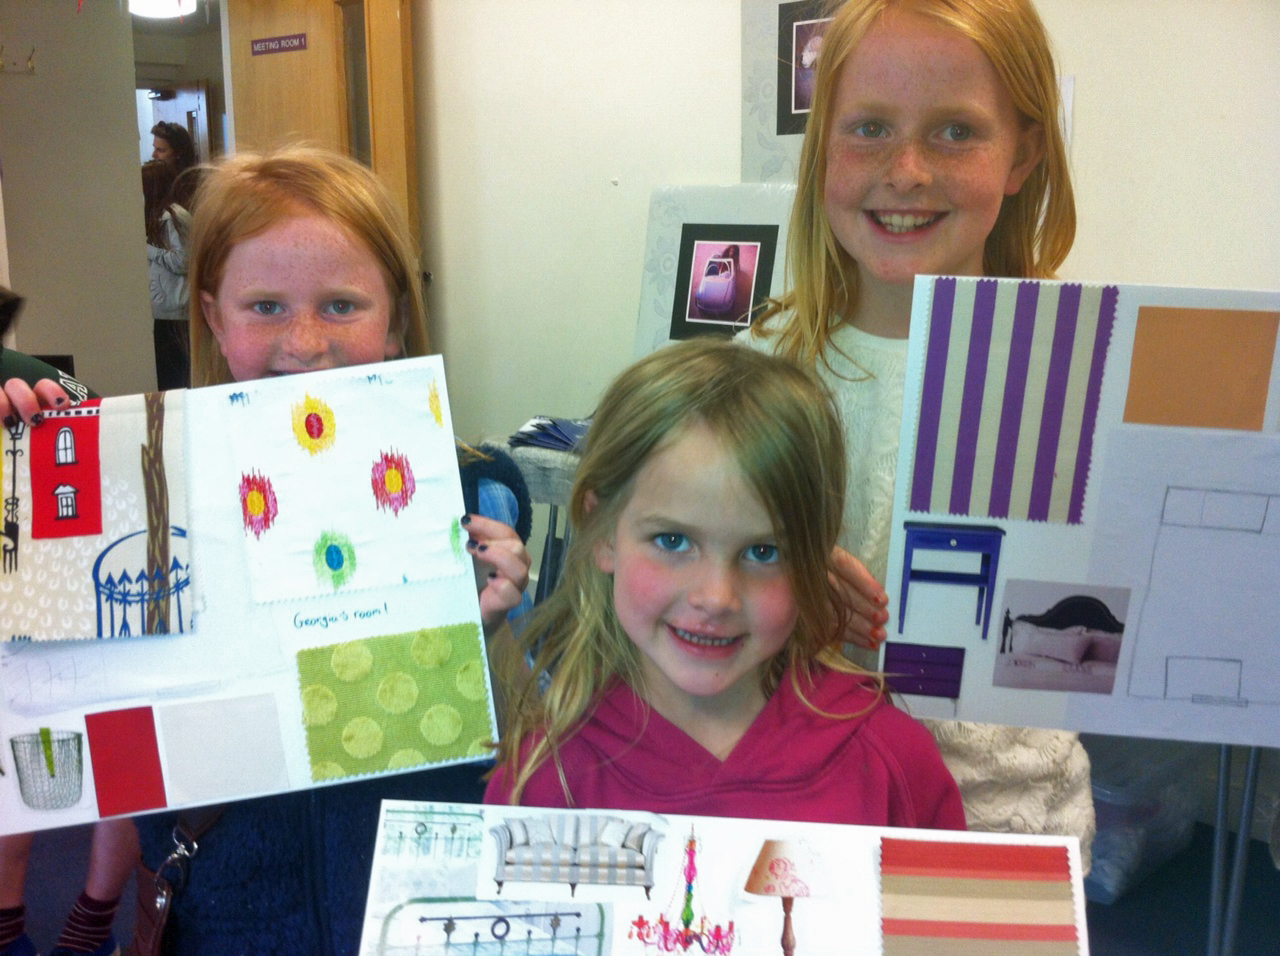 Who is the next interior designer in Lindfield? Children's workshop